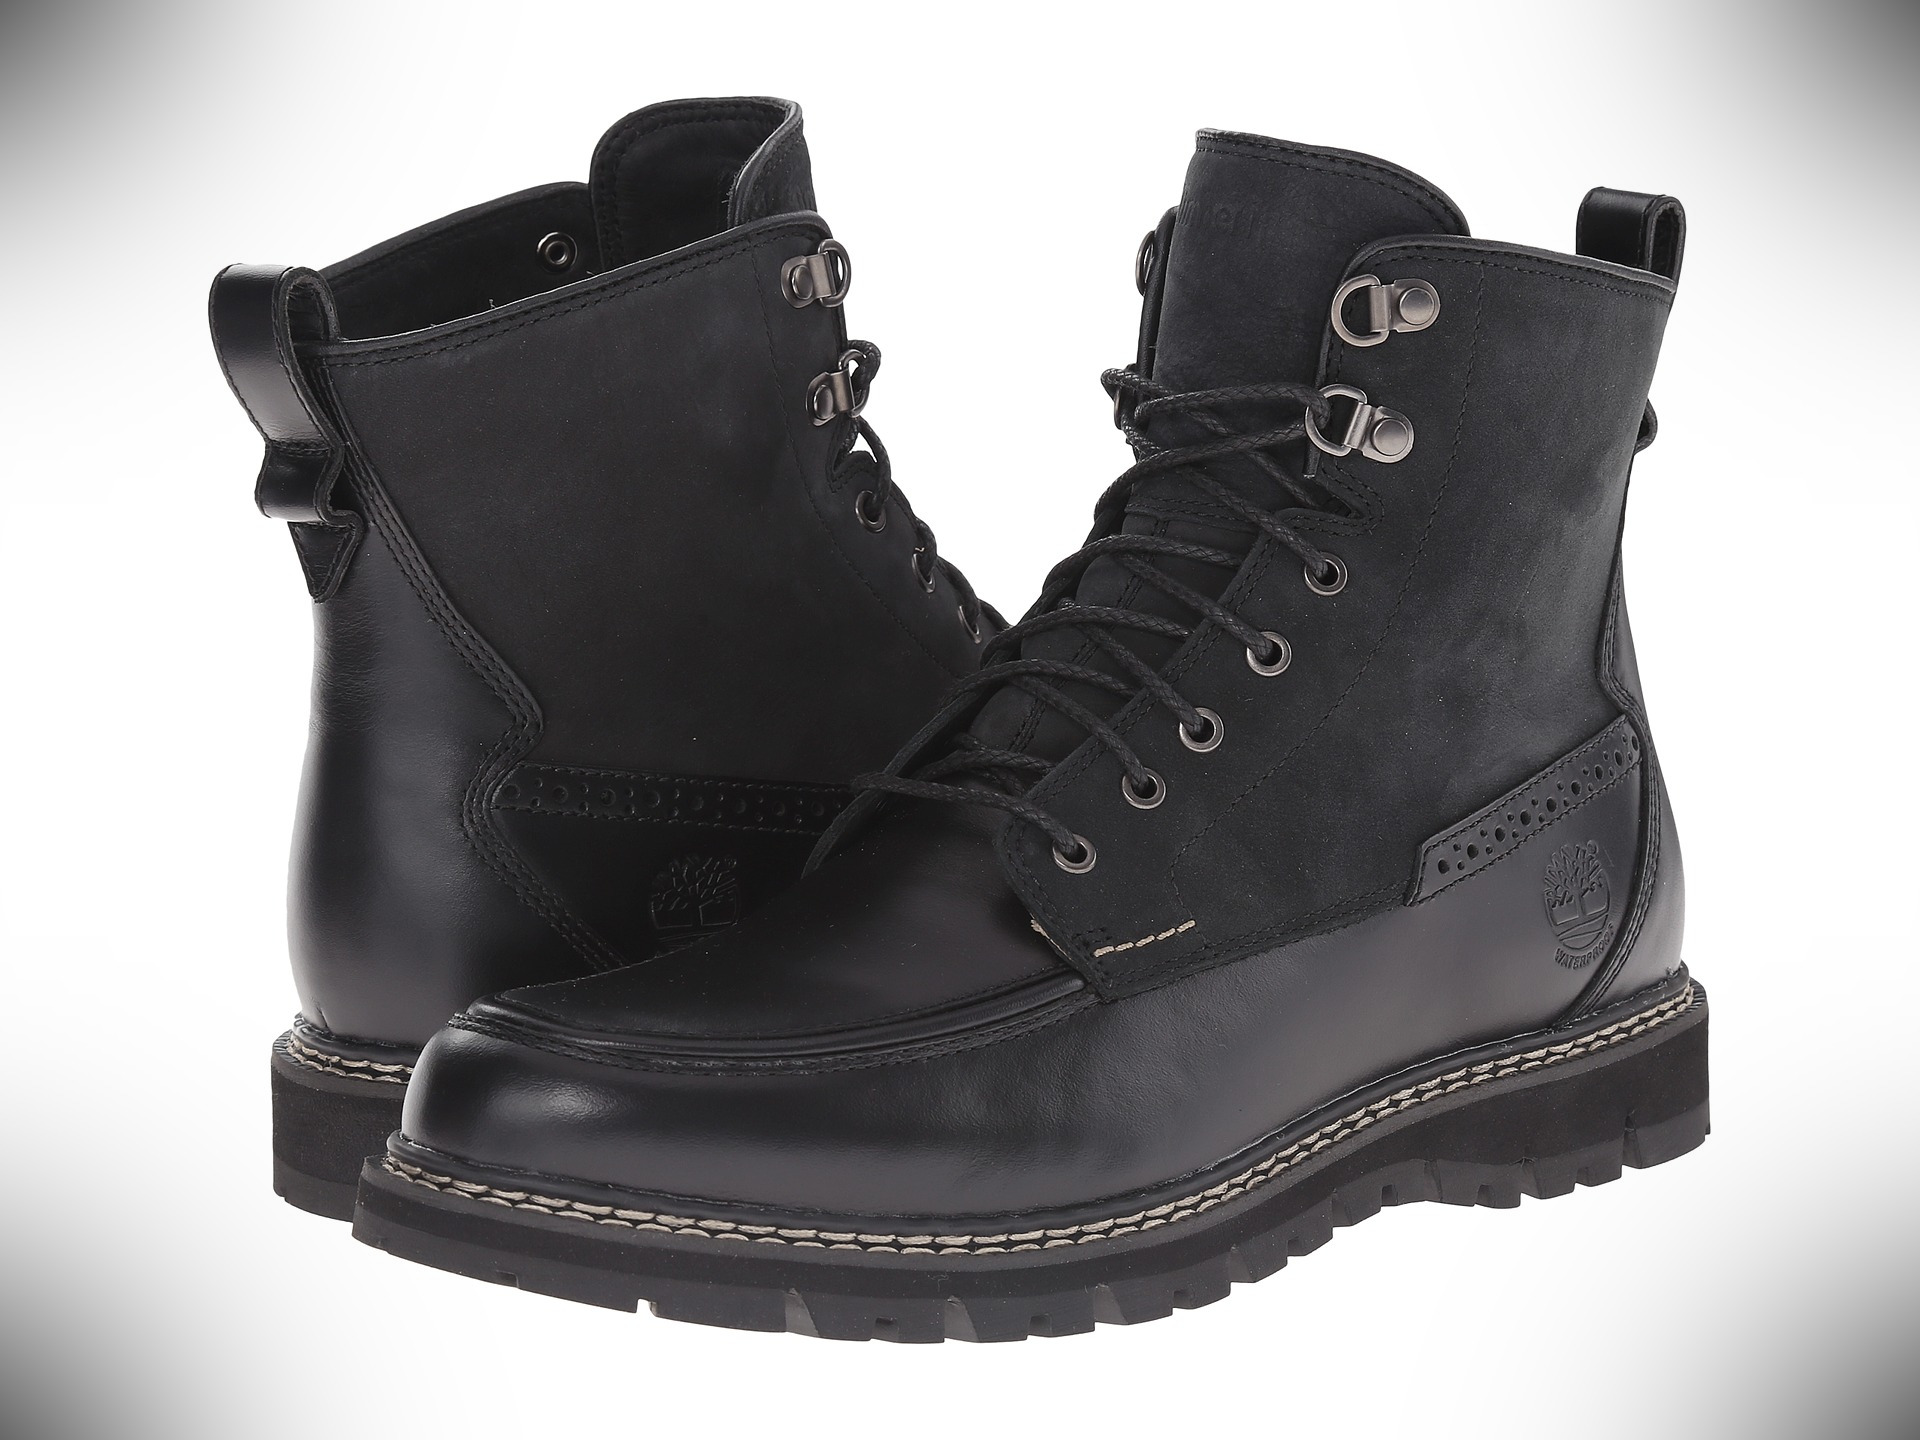 Timberland Britton Hill Plain-Toe – waterproof boots for men